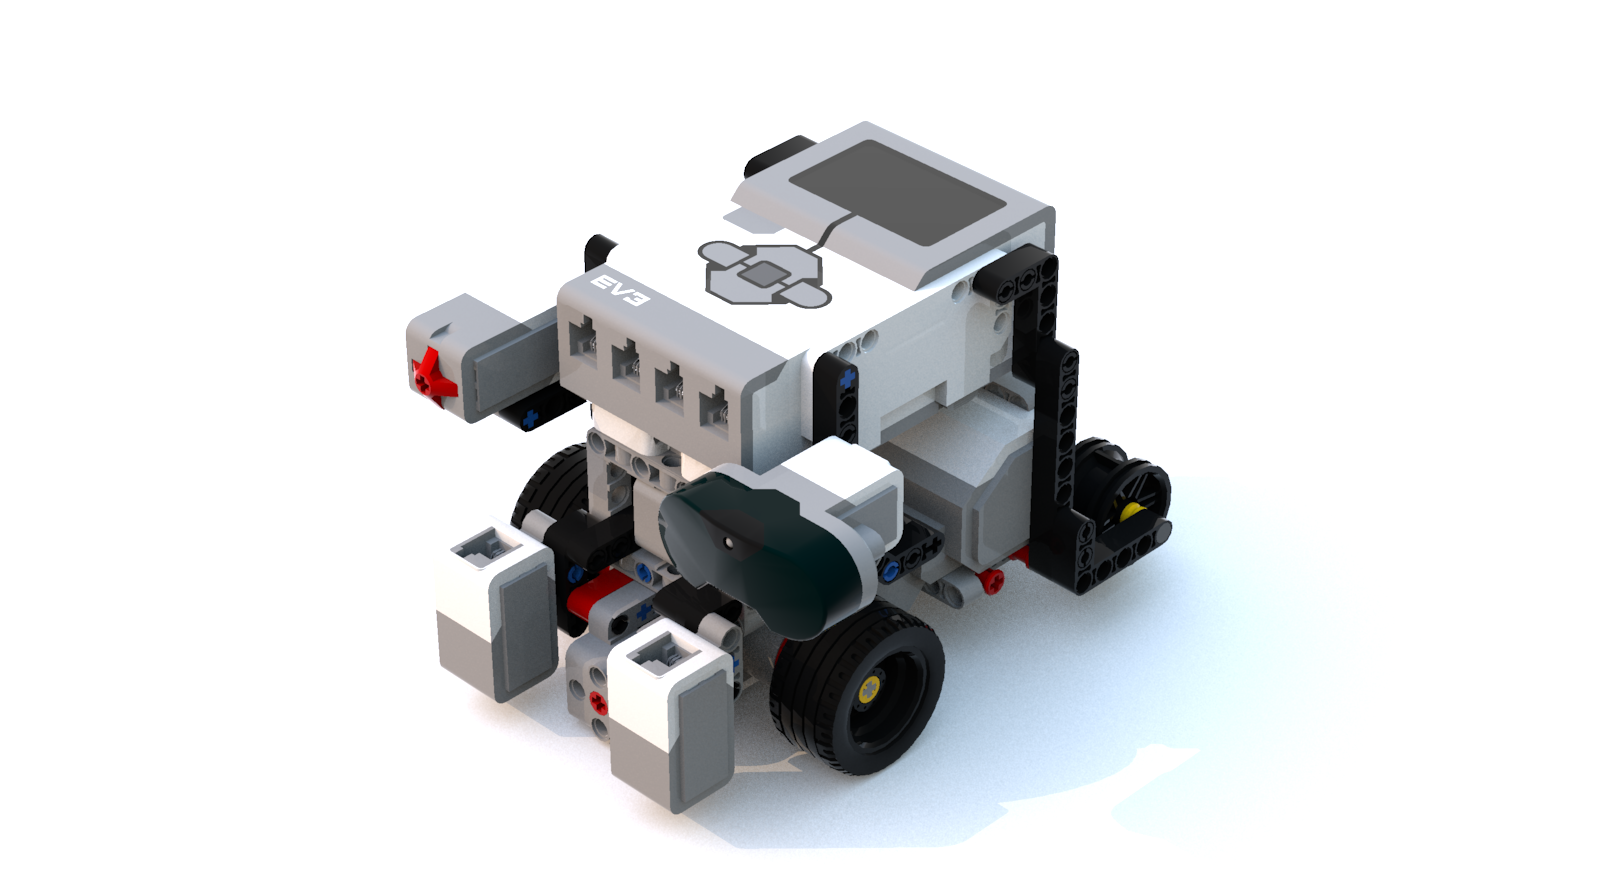 Robot Designs - Complete building instructions in PDF for different